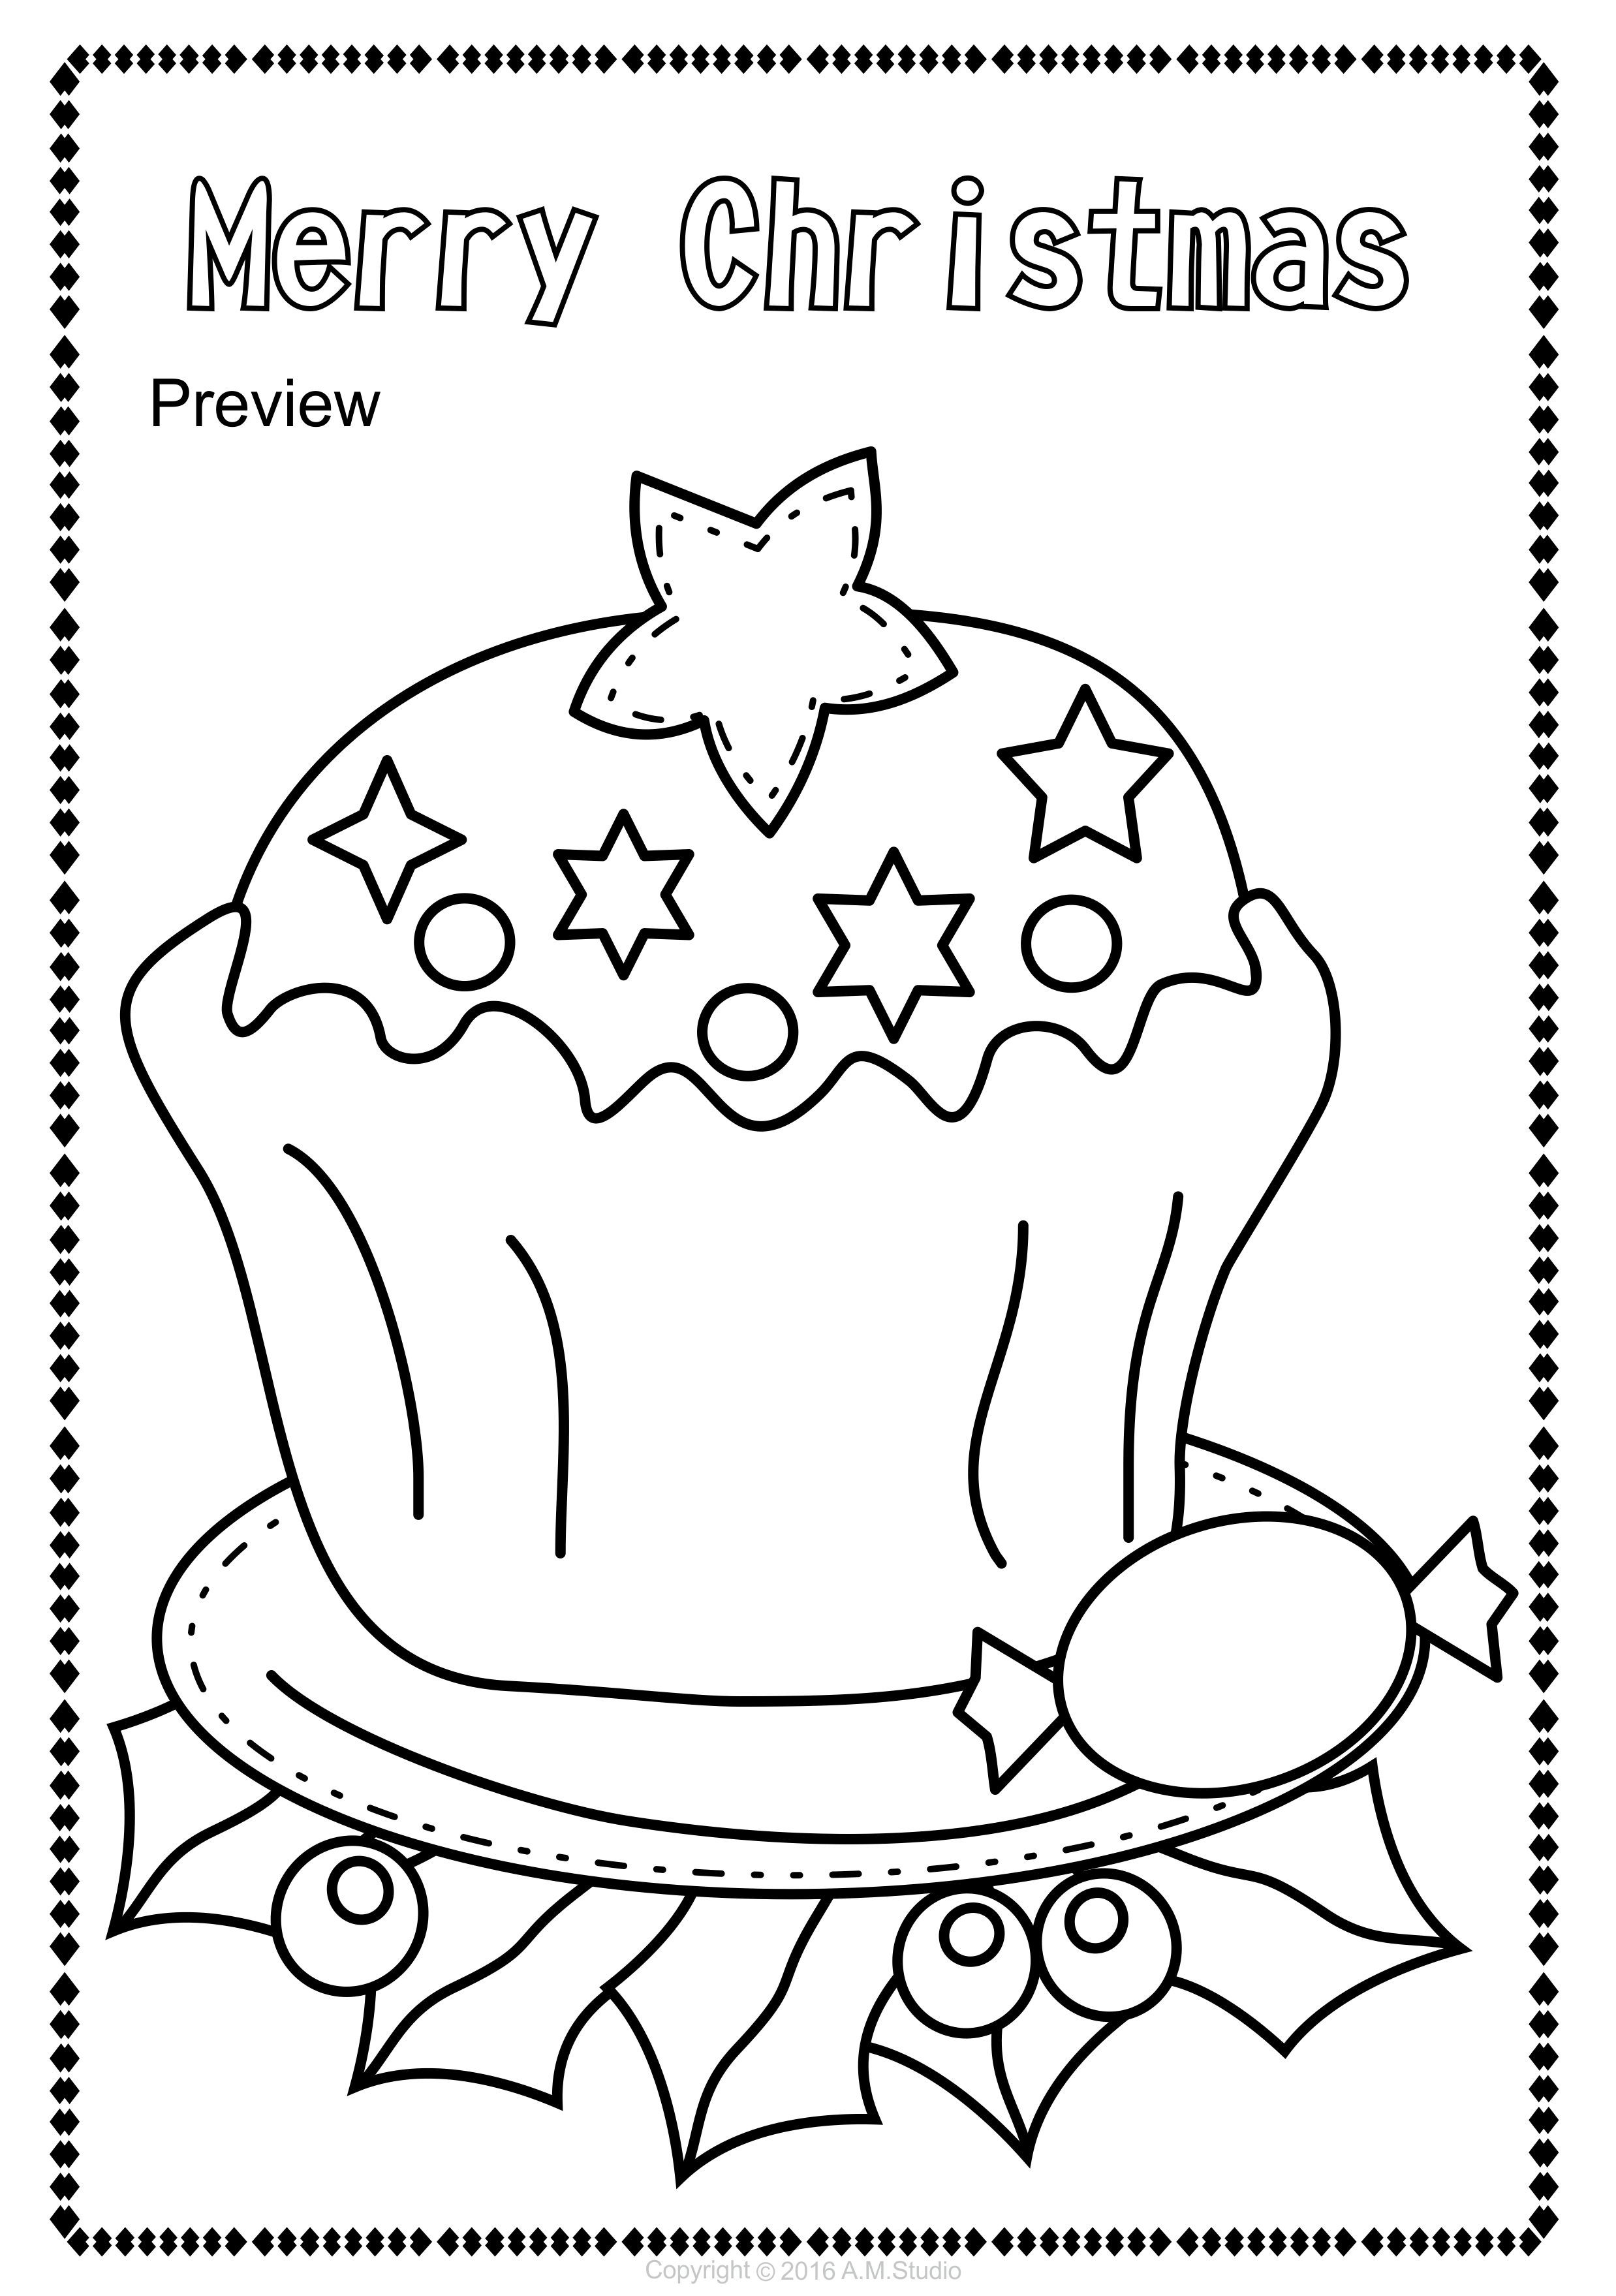 Christmas Coloring Pages   Coloring worksheets, Early finishers and ...